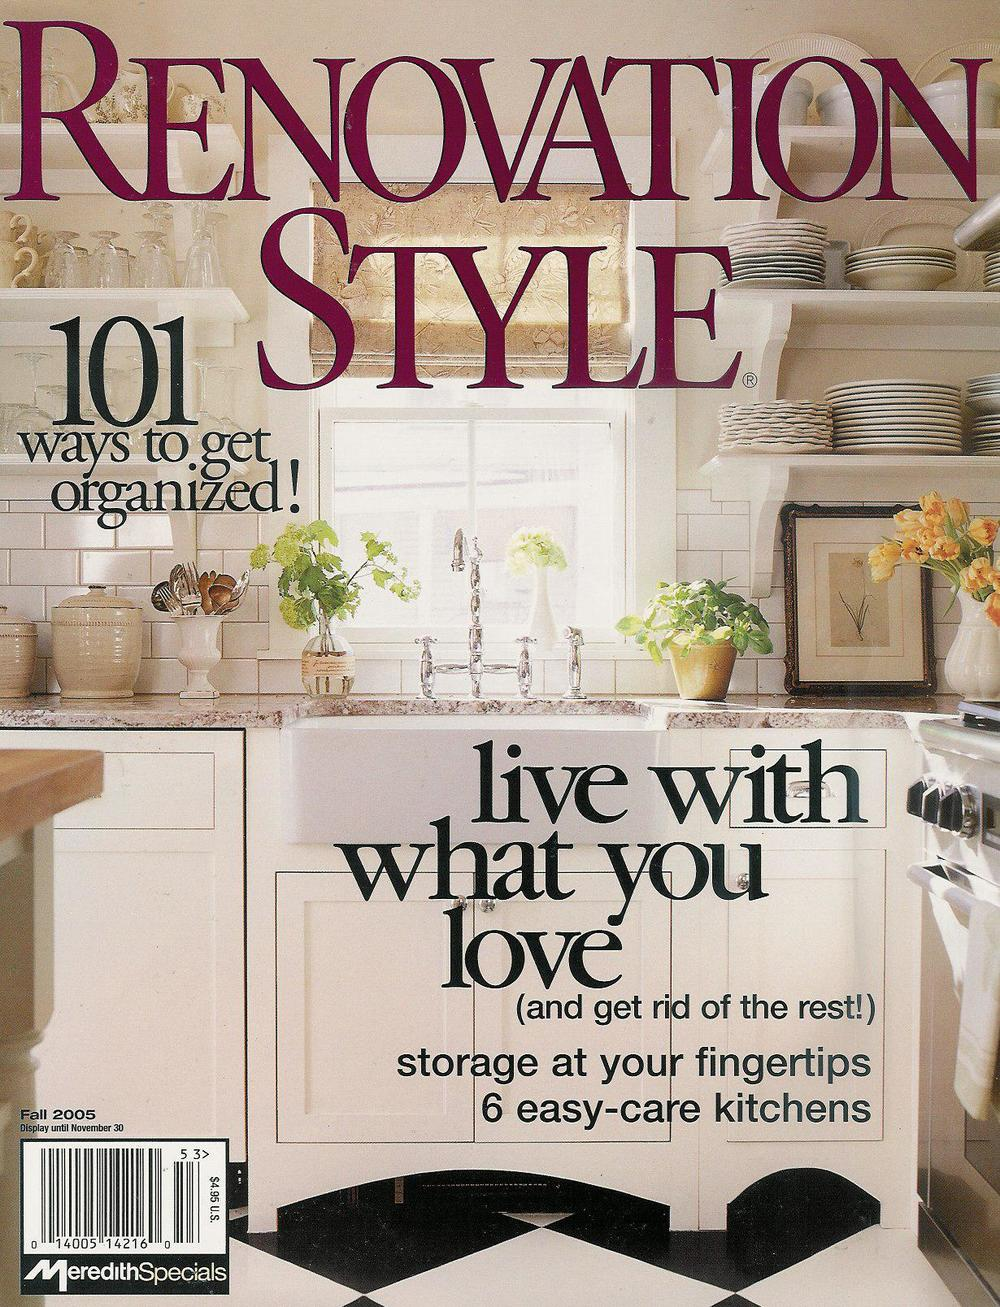 4-Renovation Style Cover #2.jpg